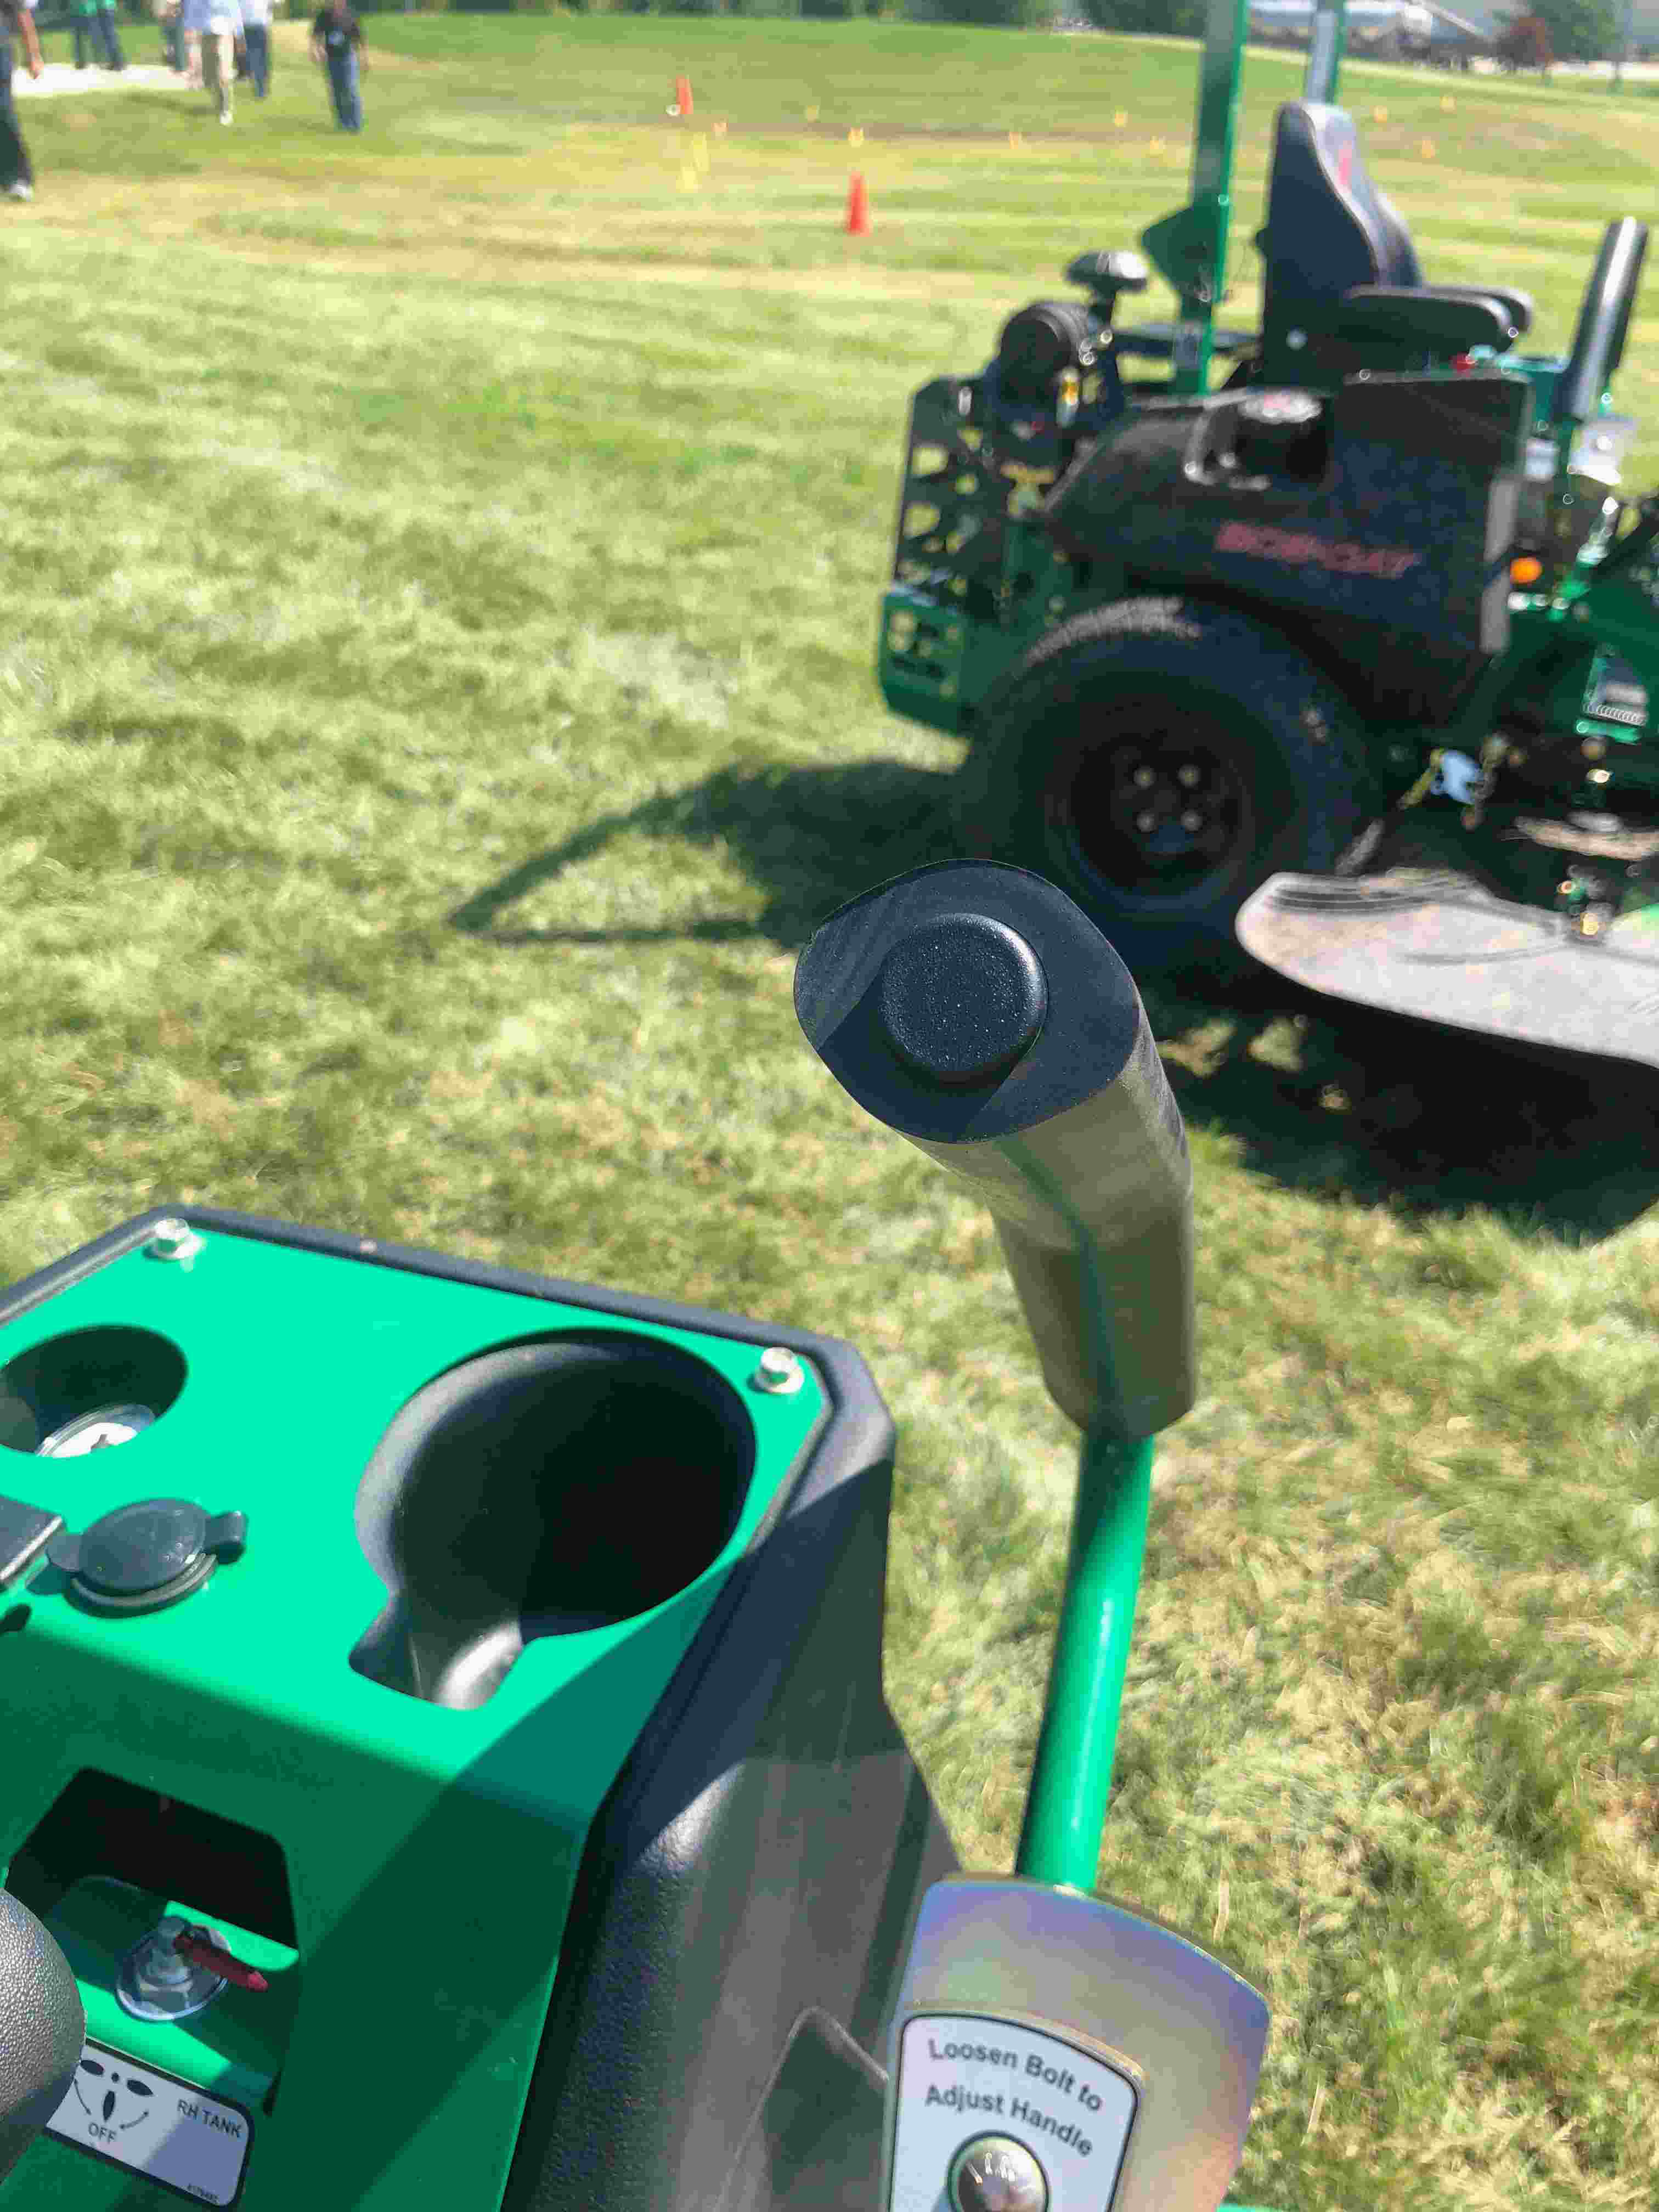 Bob-Cat announces new lineup of commercial mowers